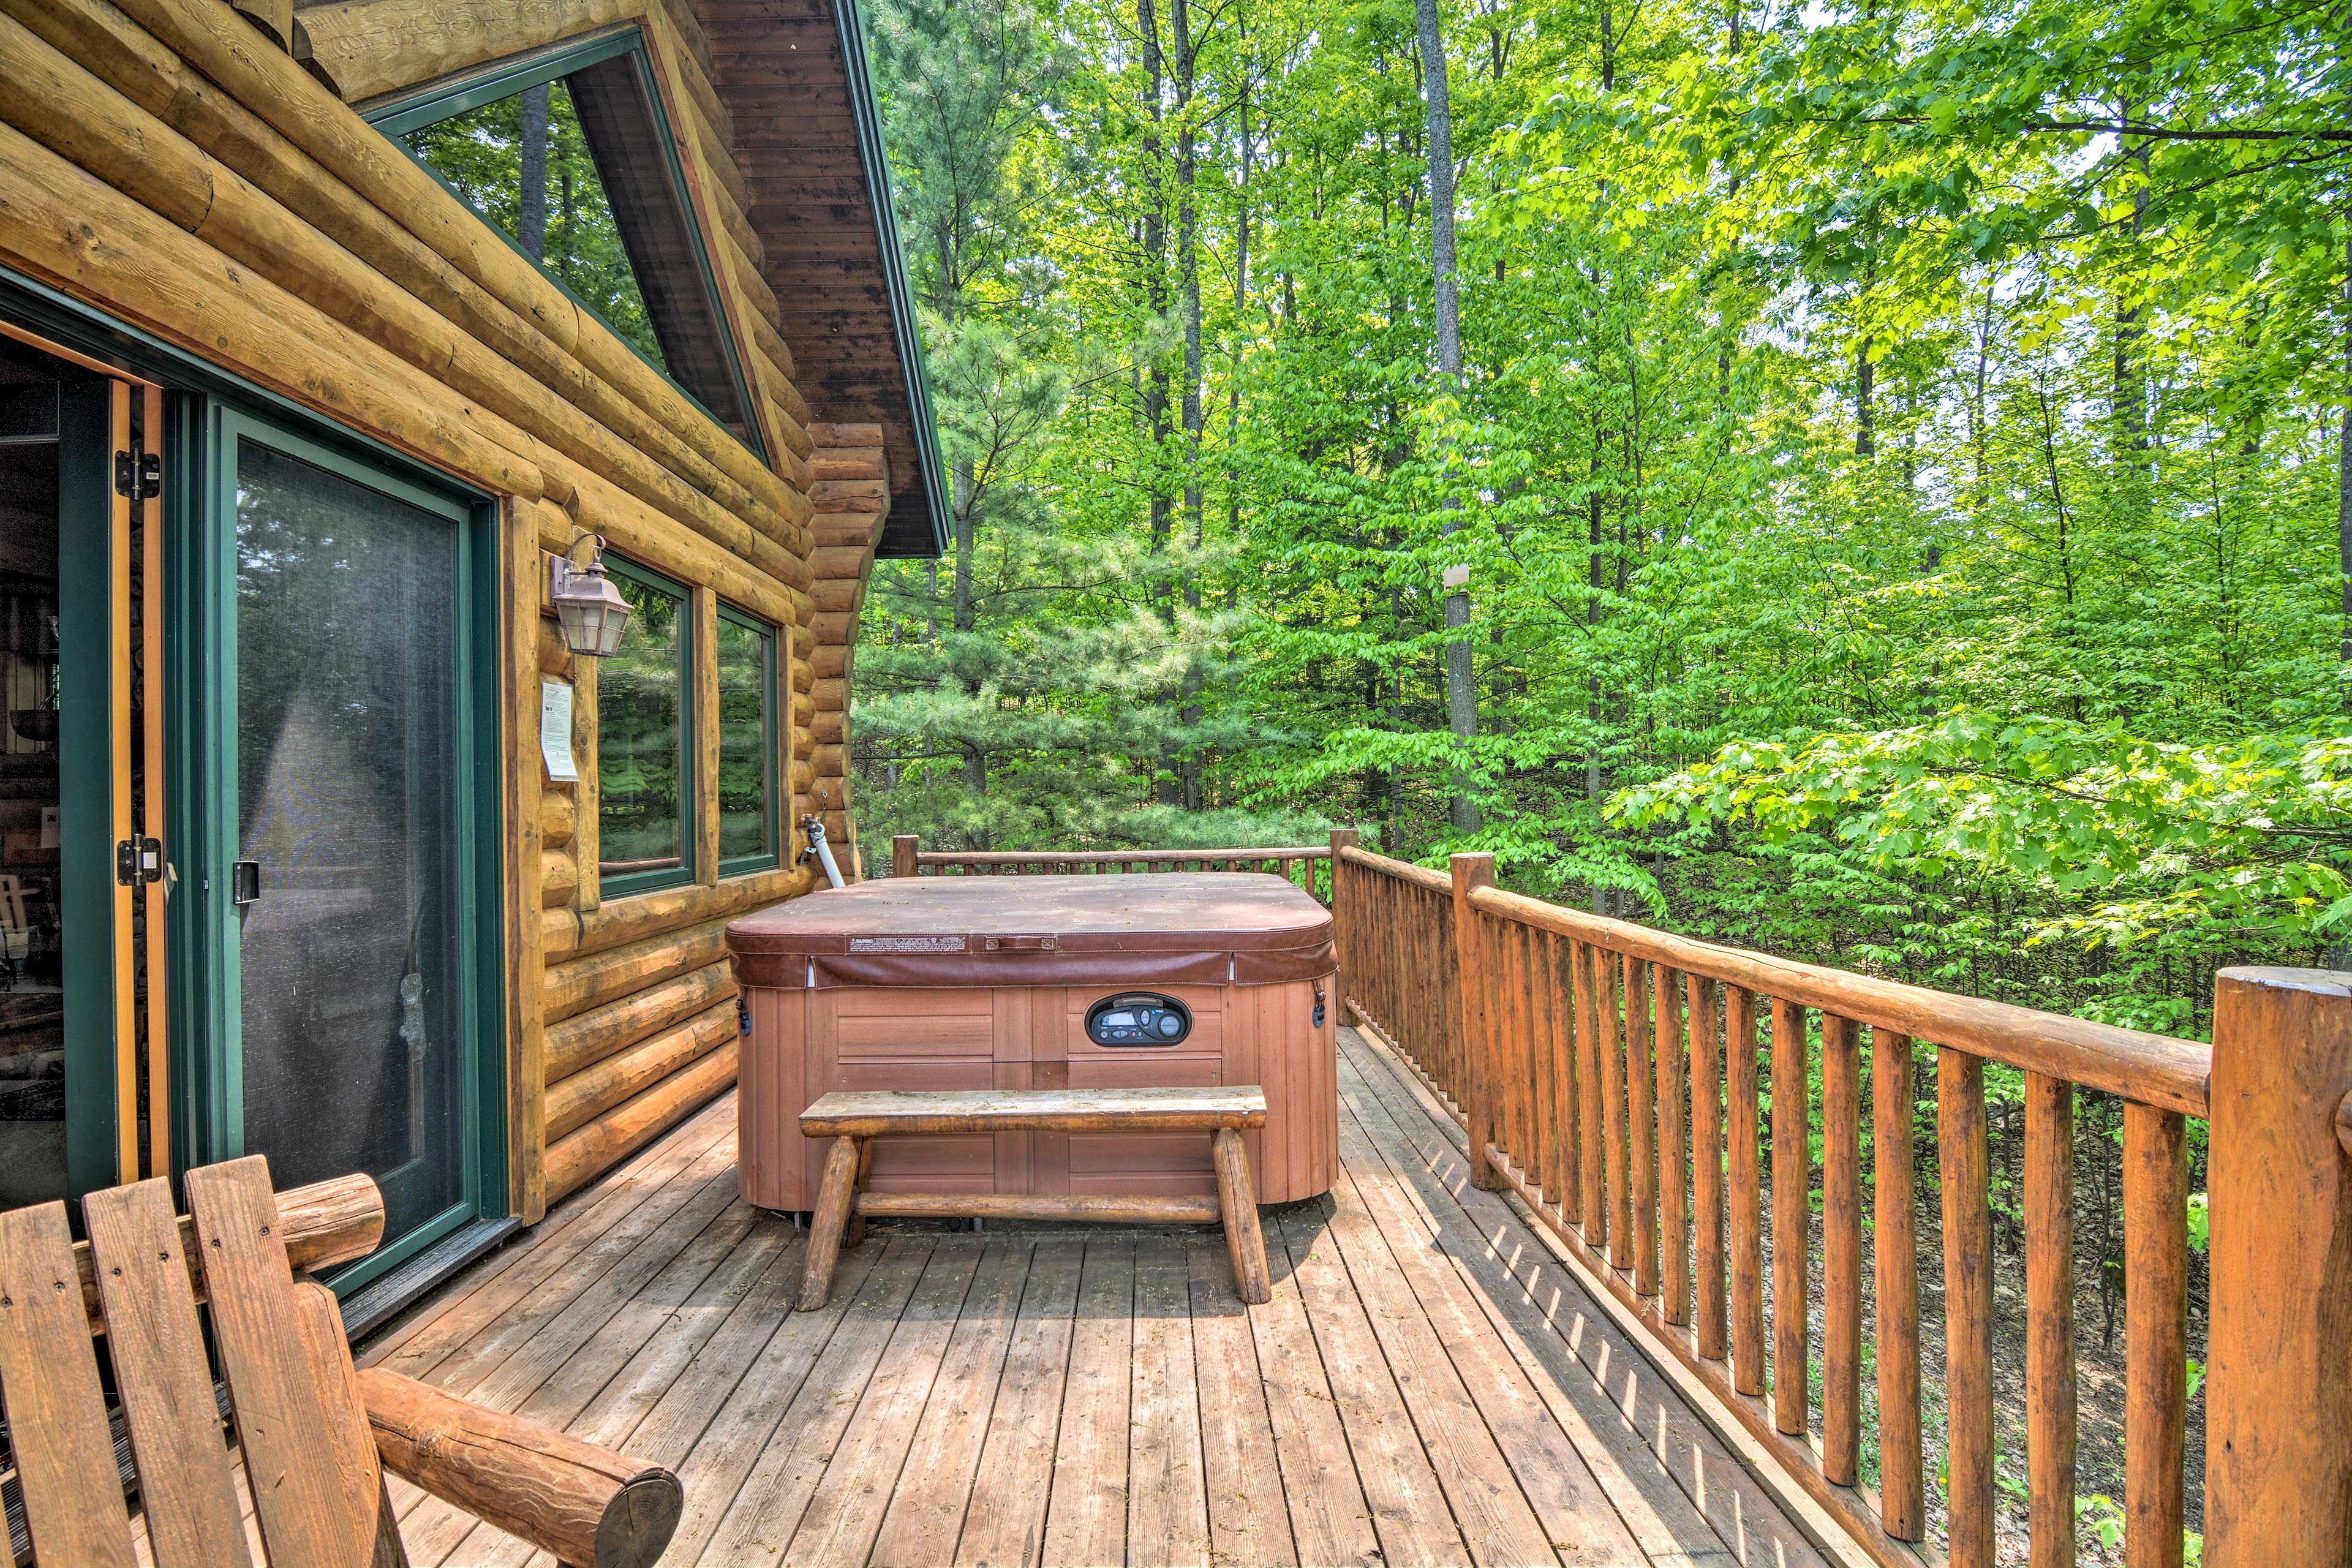 Soak sore muscles from skiing in the private hot tub.